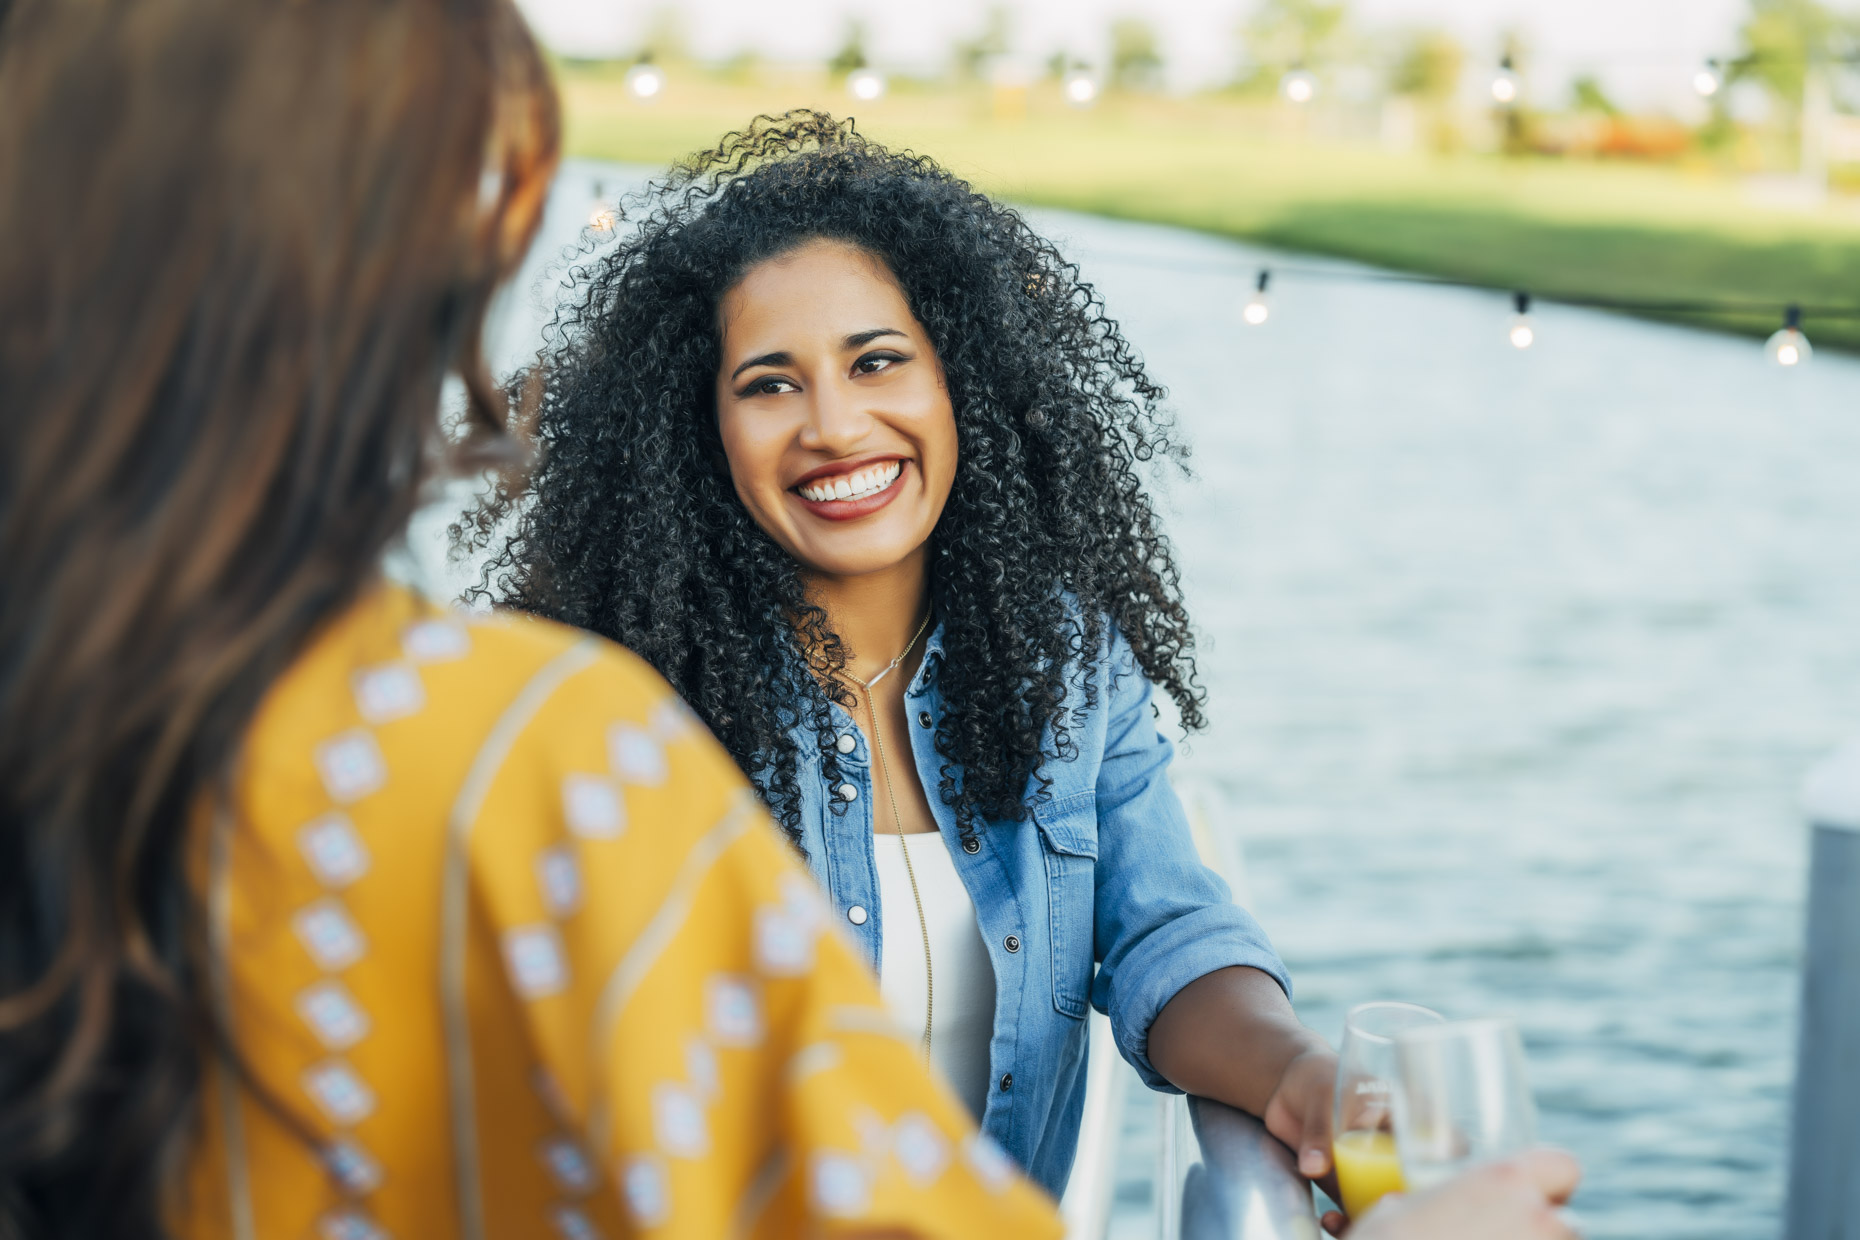 Smiling woman with big curly hair talking to friend by lake